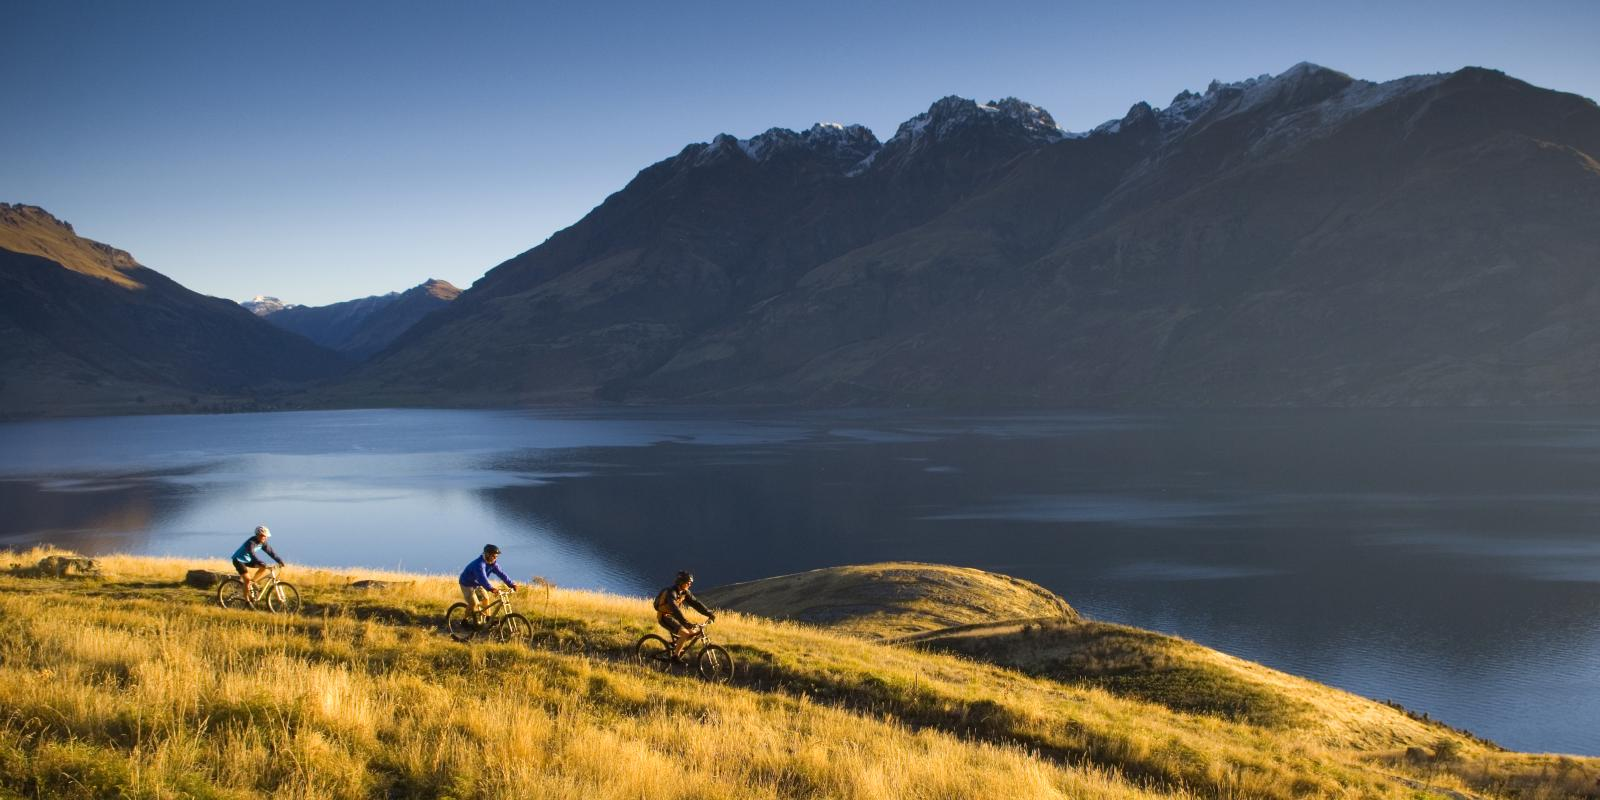 Image from - queenstownnz.co.nz